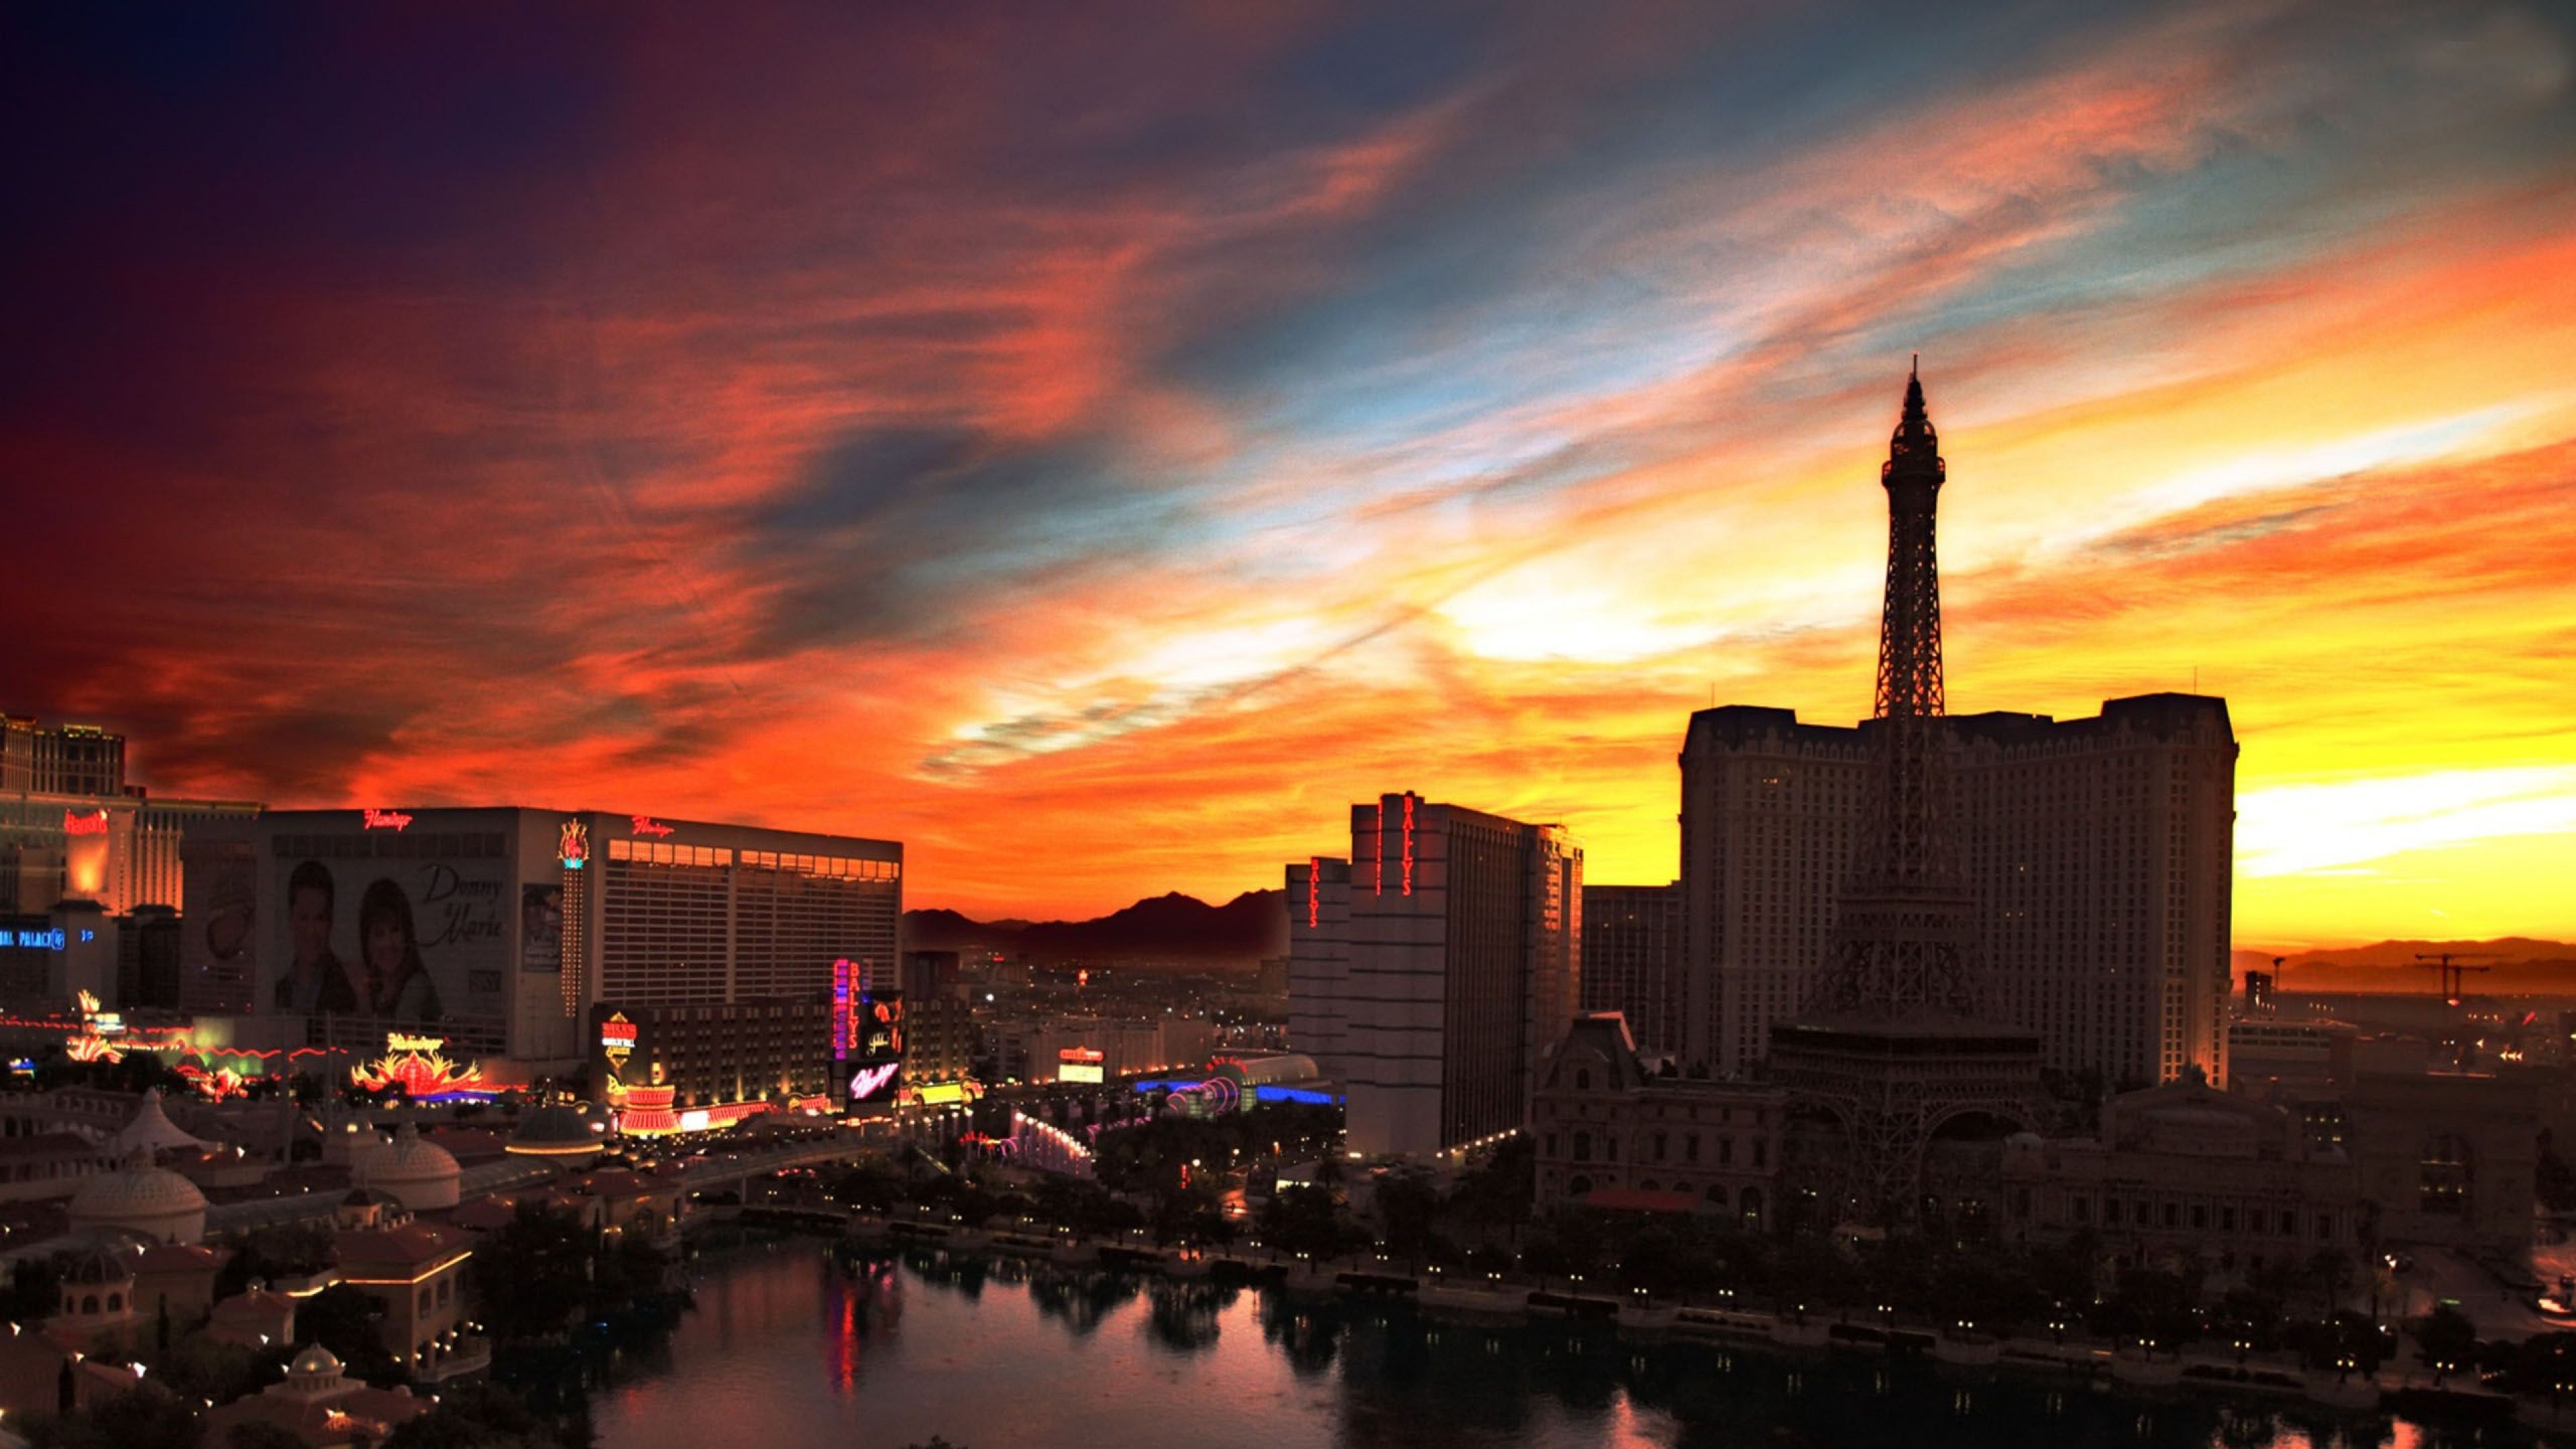 Las vegas hd wallpapers pixelstalk net - Las vegas wallpaper 4k ...